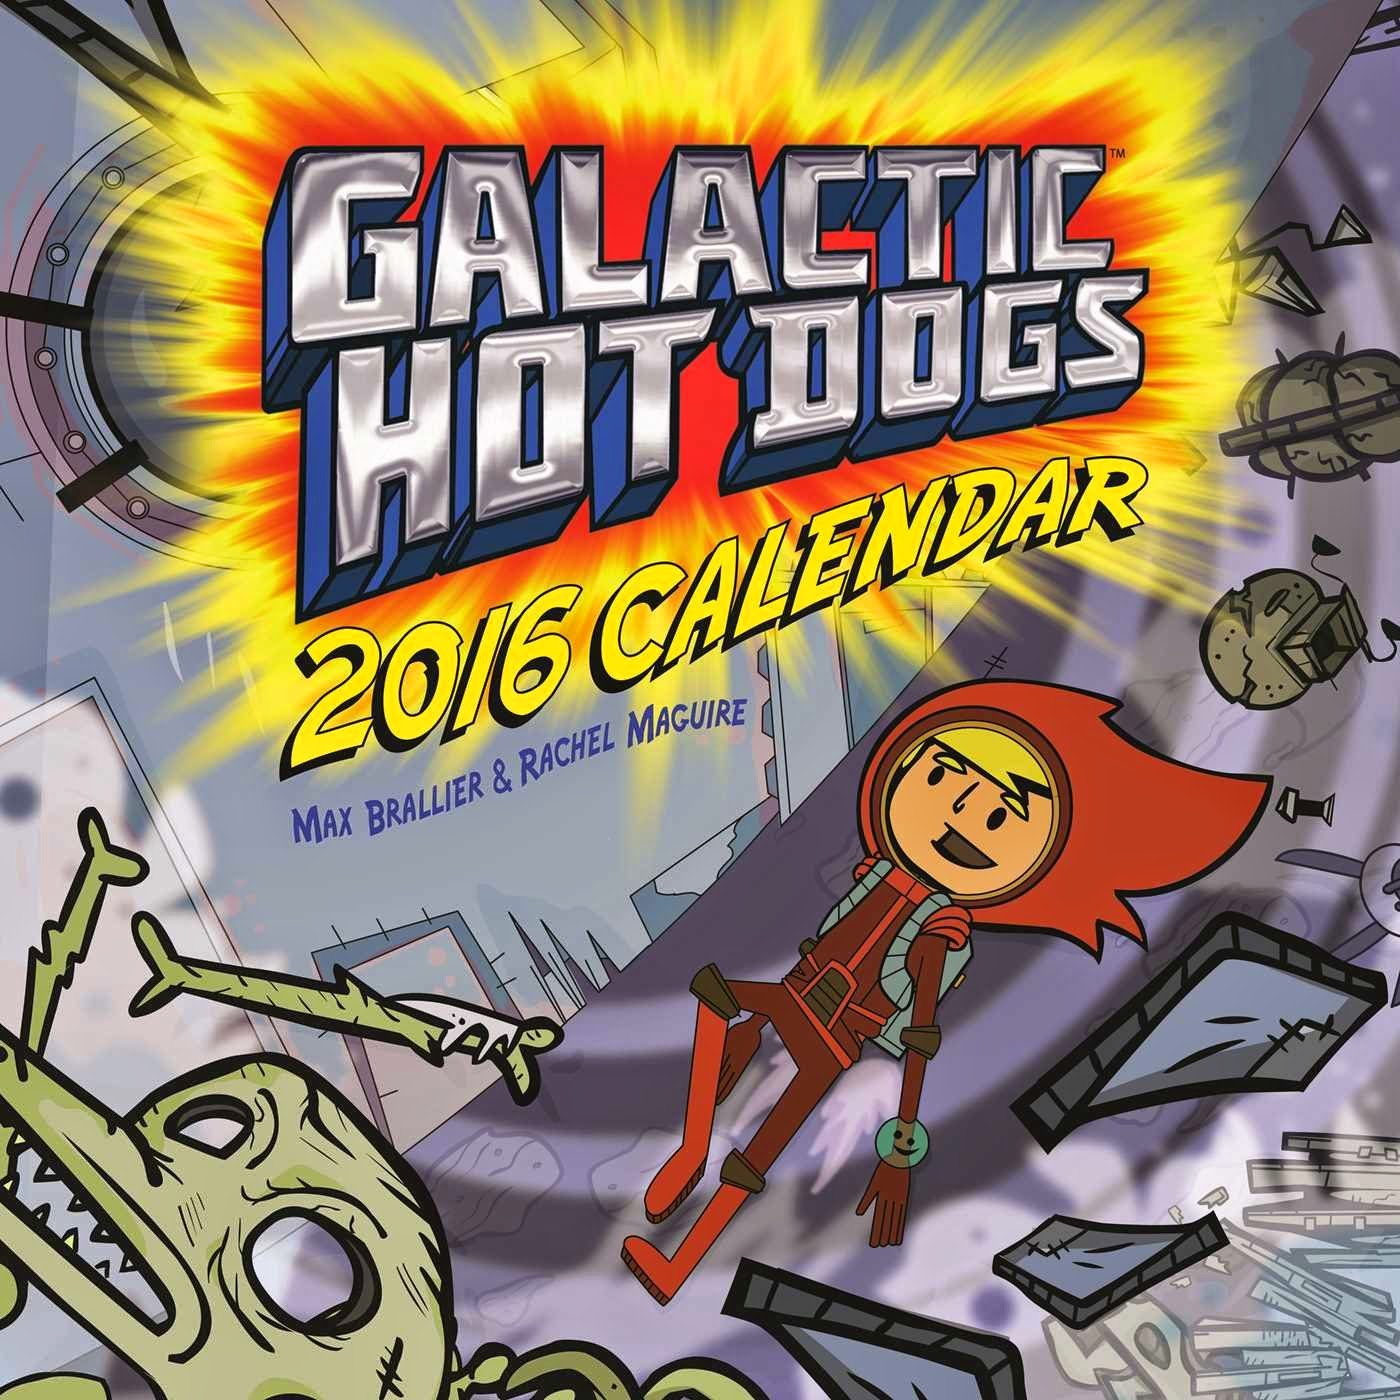 2016 Galactic Hot Dogs calendar